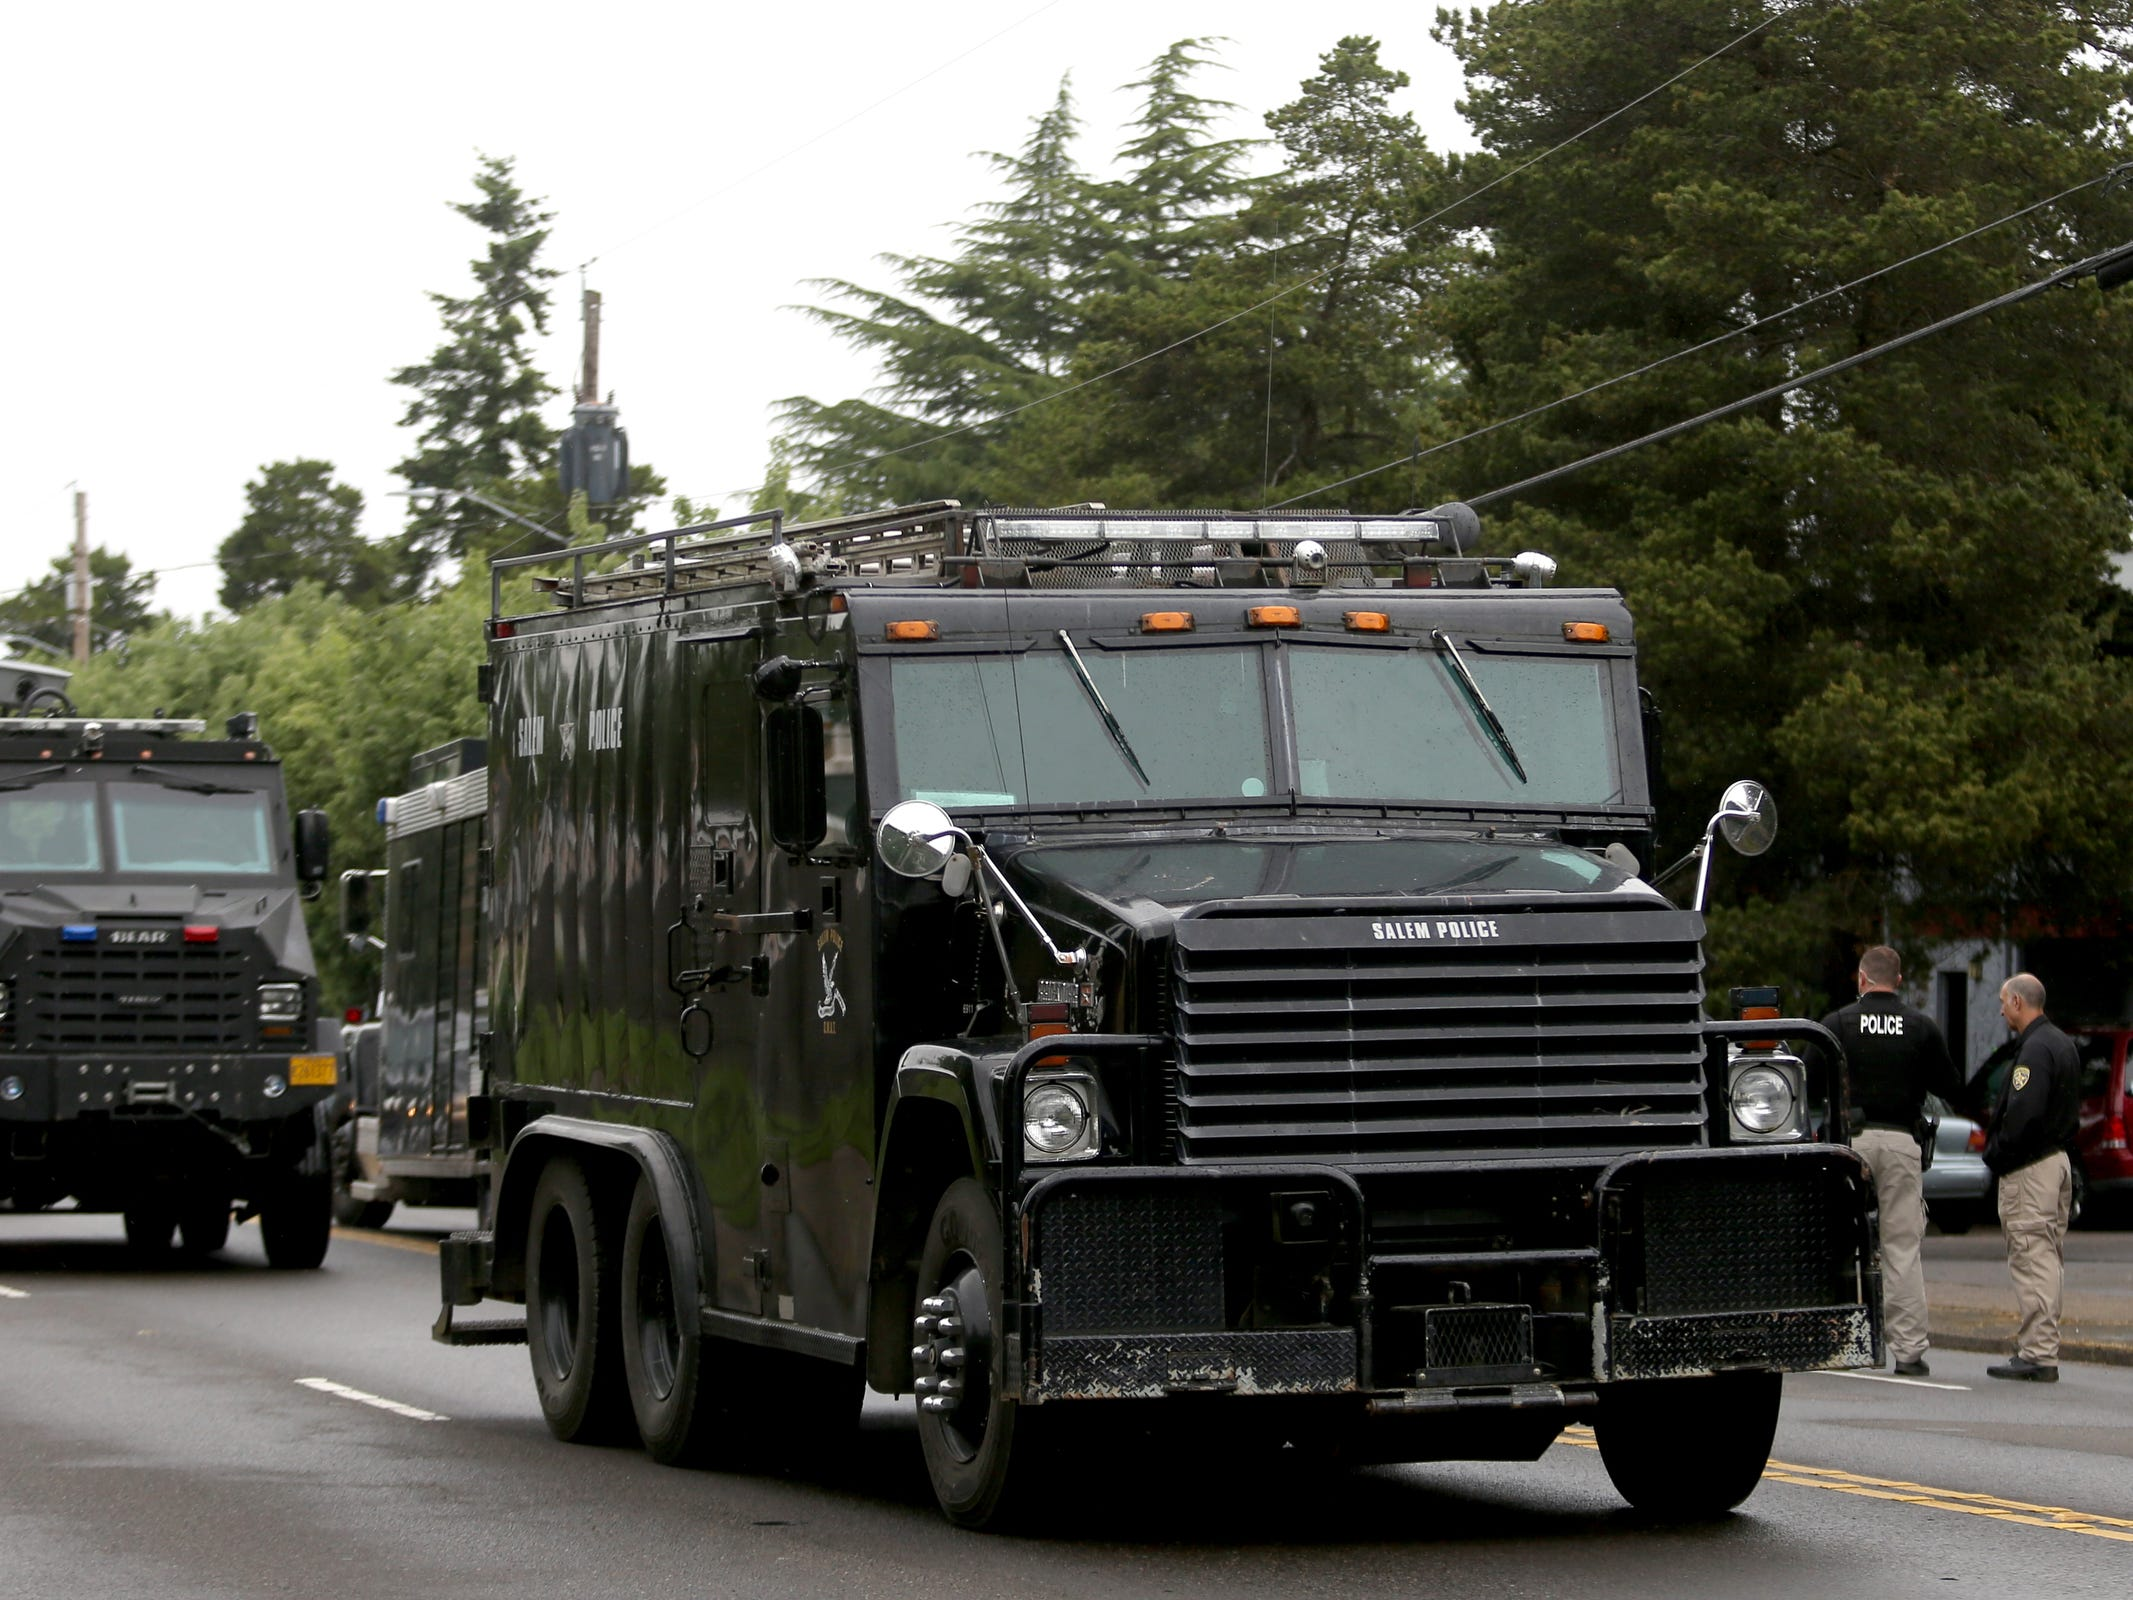 Salem Police clear the area after a suspect was taken into custody at an apartment on Broadway St. NE following an overnight officer-involved shooting in Salem on May 15, 2019. Following a traffic stop on Tuesday evening, a veteran Salem Police patrol officer was wounded by multiple gunshots. She has since been released from Salem Hospital. Police also took another person into custody who was in the apartment.